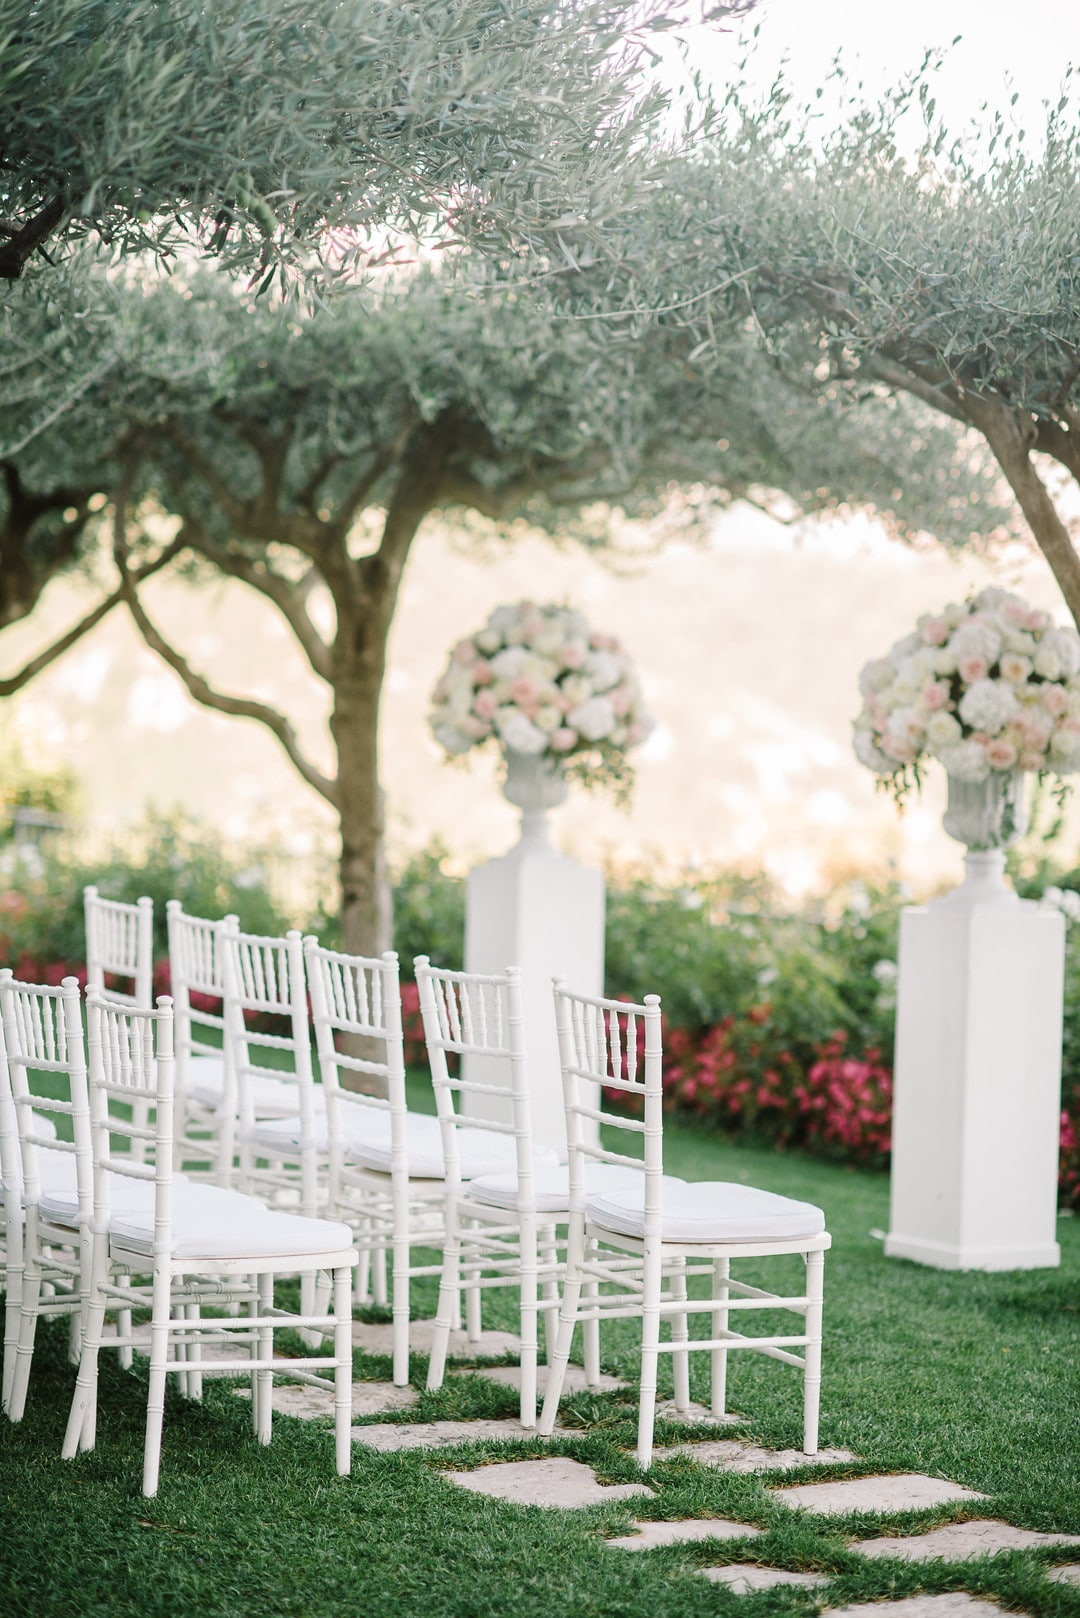 Denise & Brad's Lavender Garden Ceremony Overlooking the Amalfi Coast, Photography by Krysta Norman Photography for Destination Wedding network Adriana Weddings